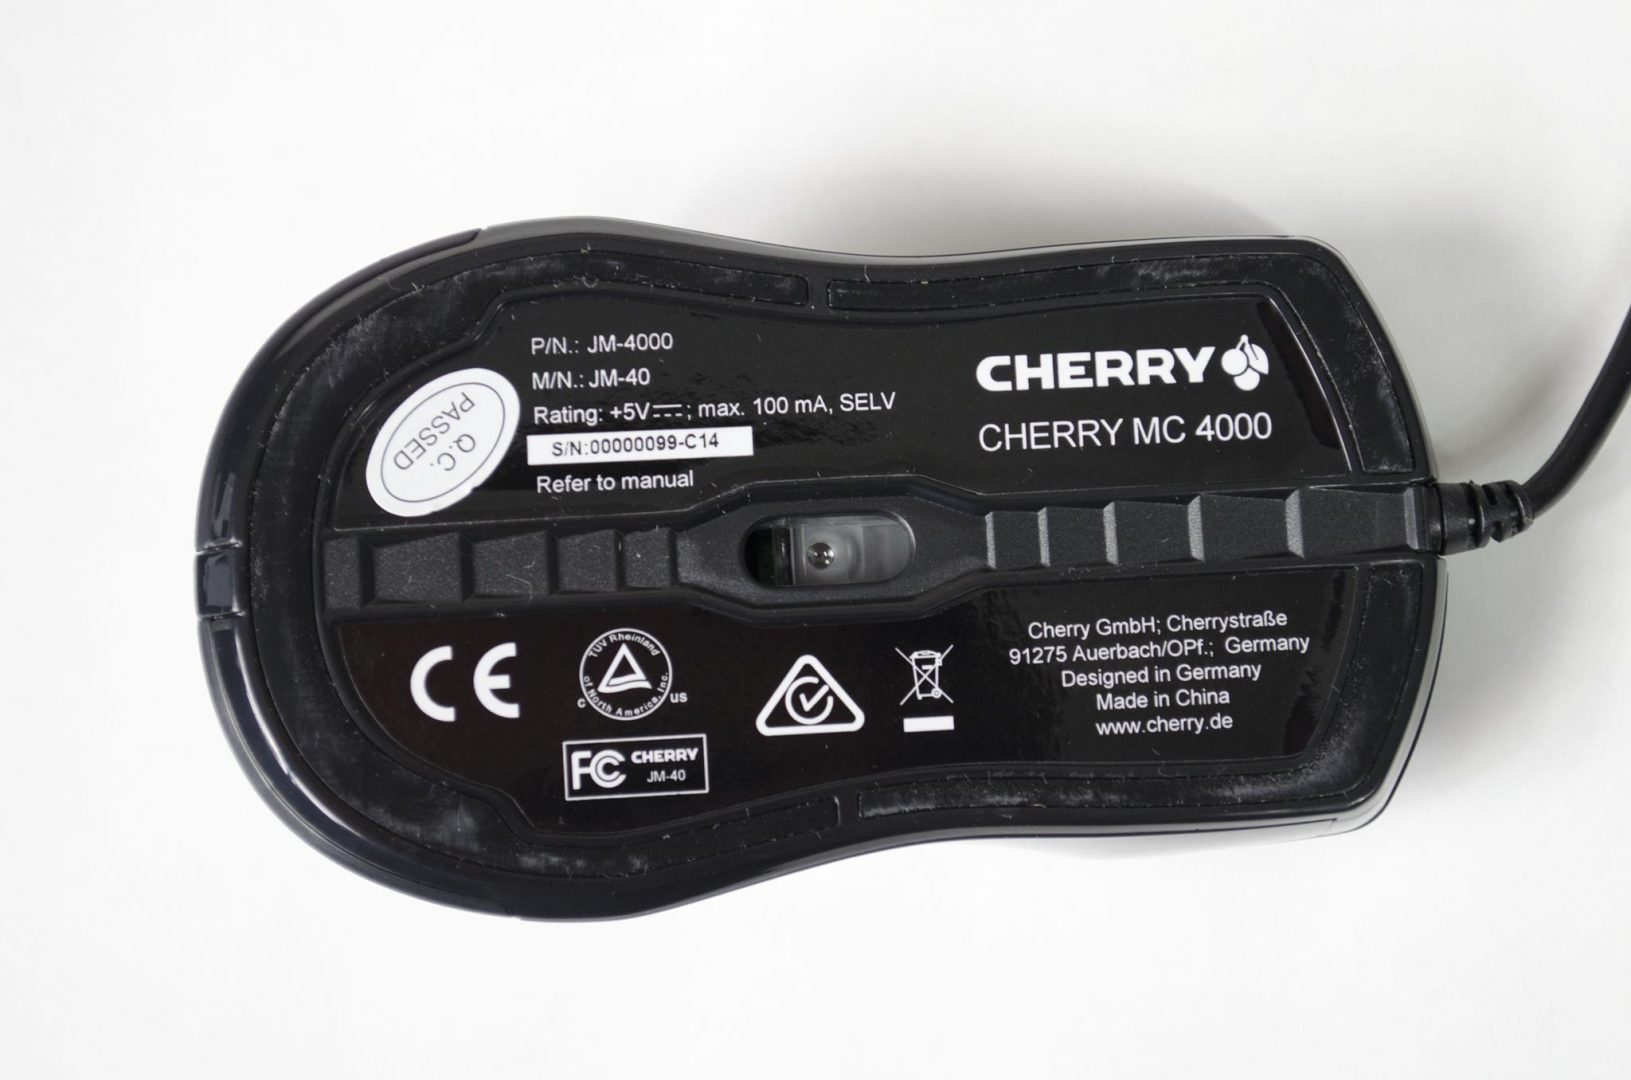 cherry mc 4000 gaming mouse_8